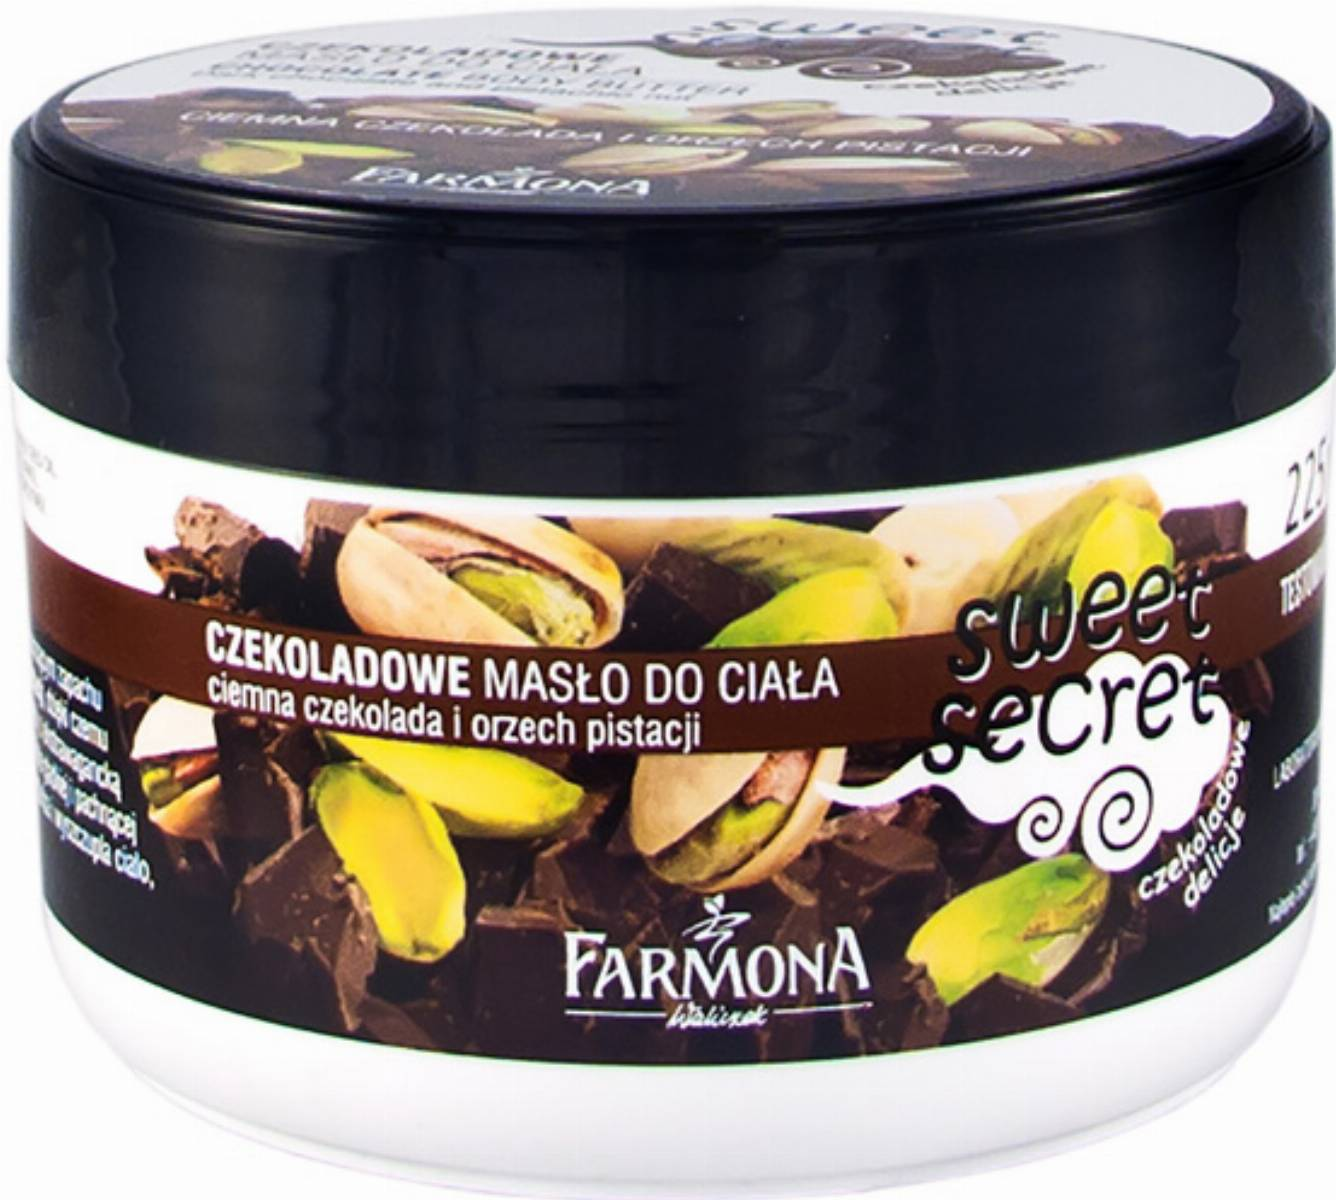 Farmona Sweet Secret Czekoladowe maslo do ciala